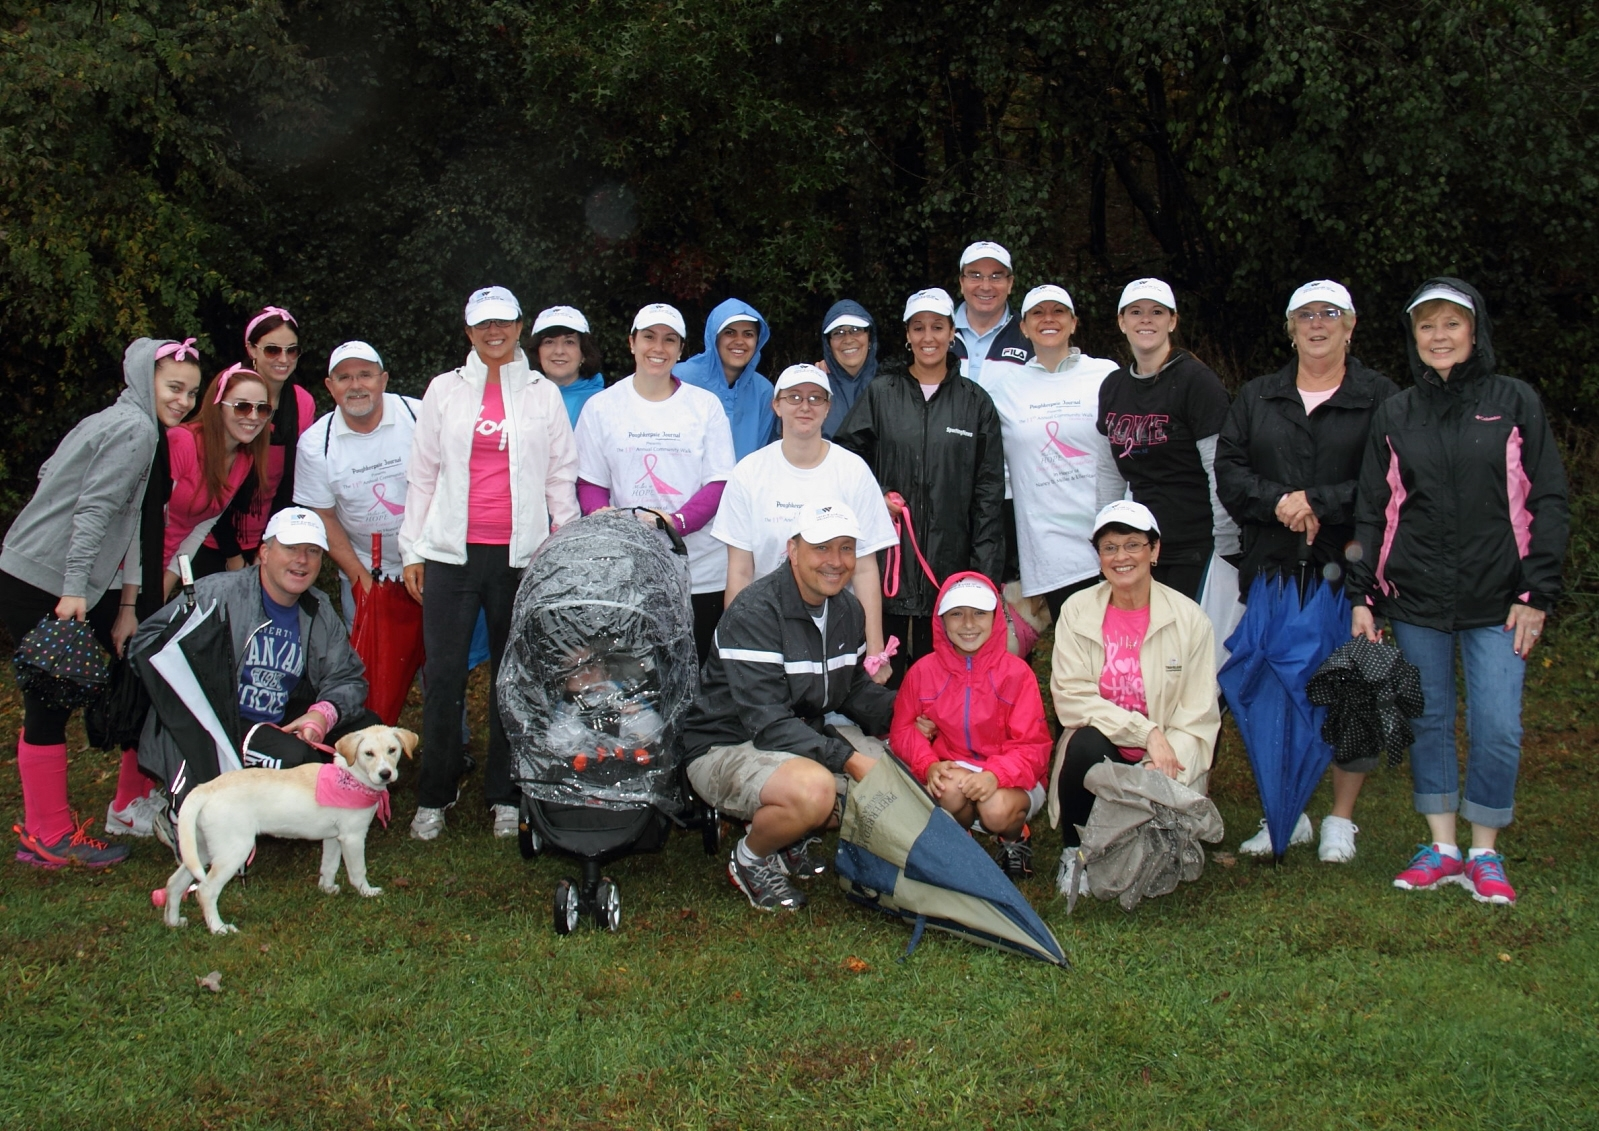 Miles of Hope – Breast Cancer Foundation Walk